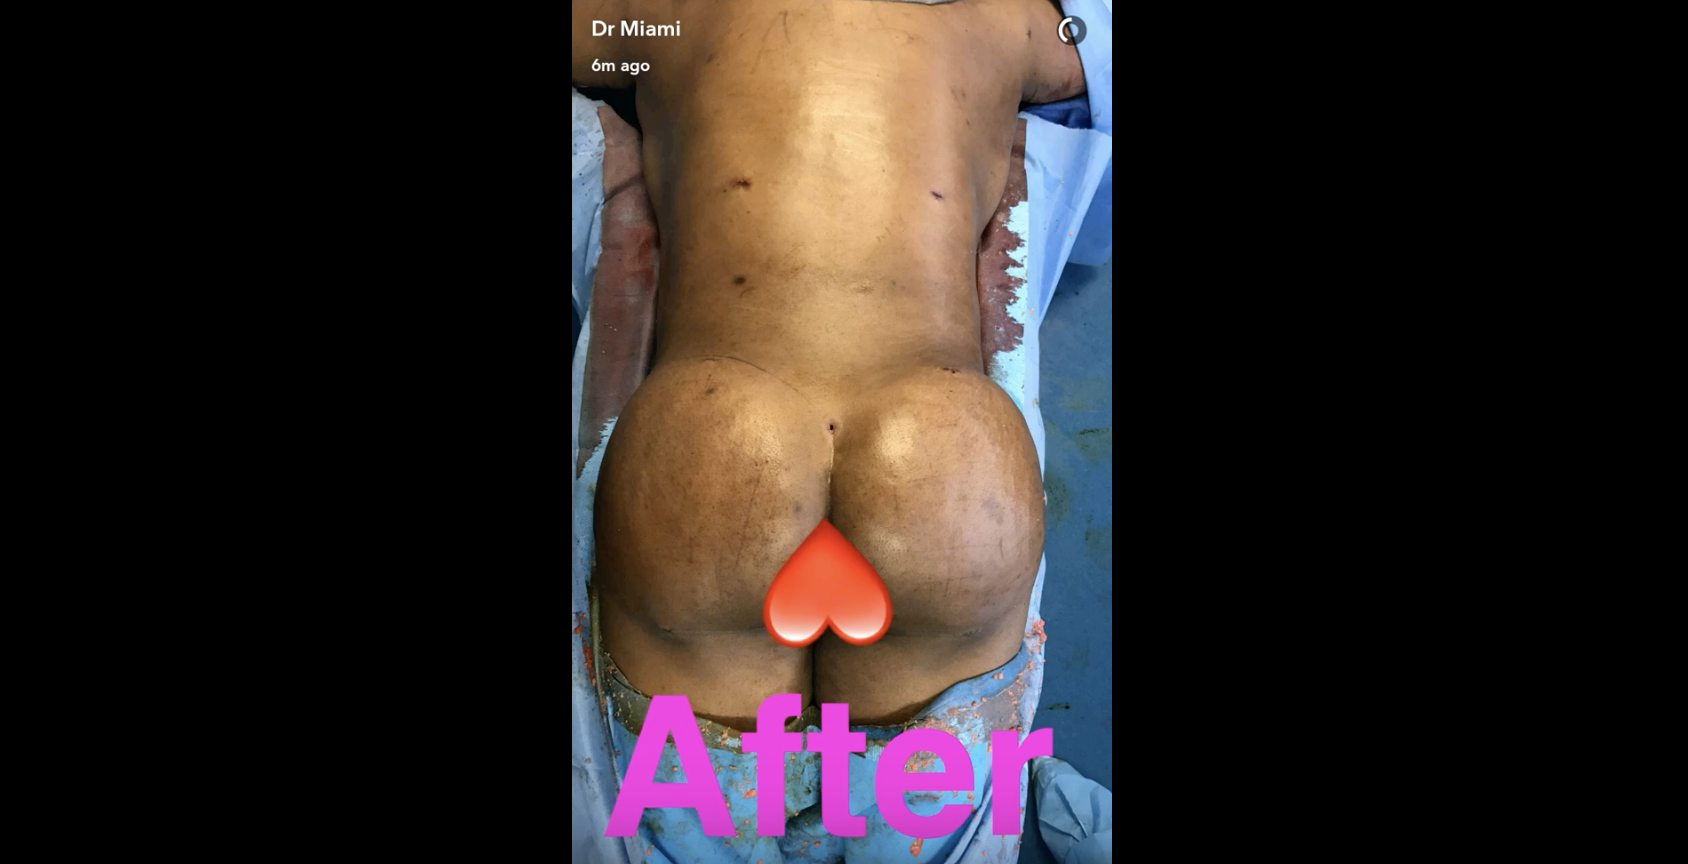 Dr Miami Liposuction before and after